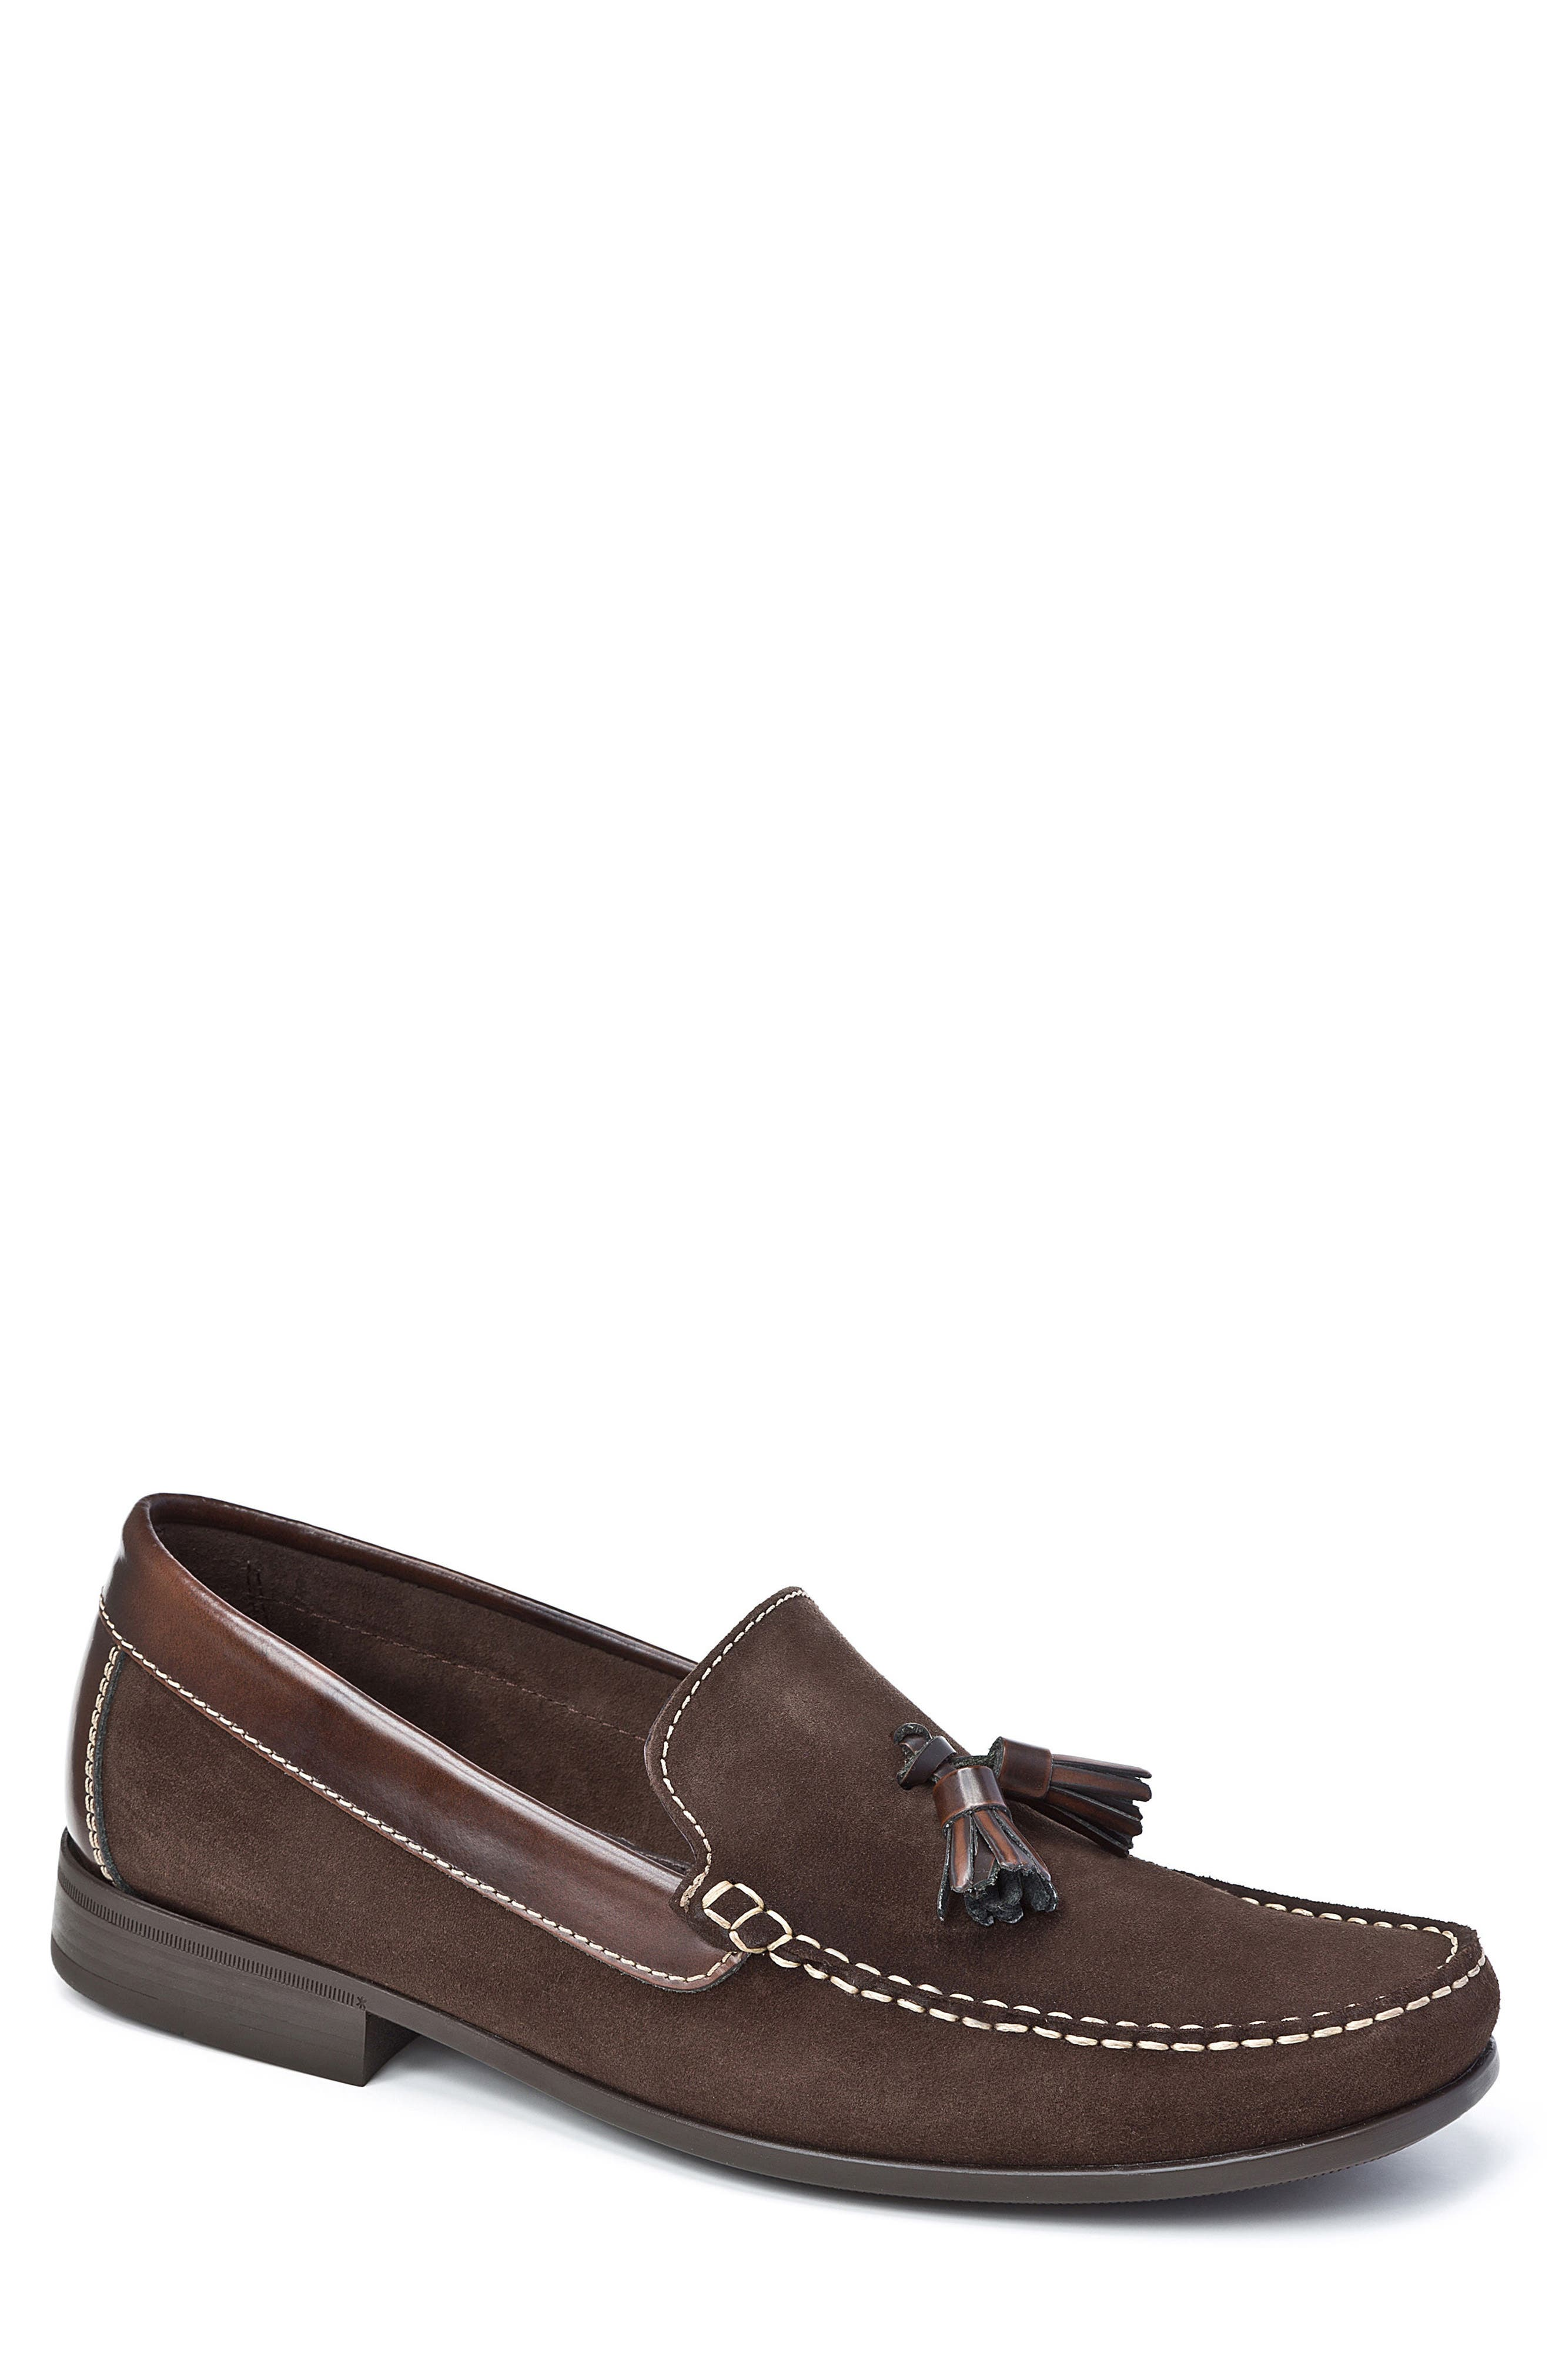 SANDRO MOSCOLONI,                             Hojas Tassel Loafer,                             Main thumbnail 1, color,                             BROWN LEATHER